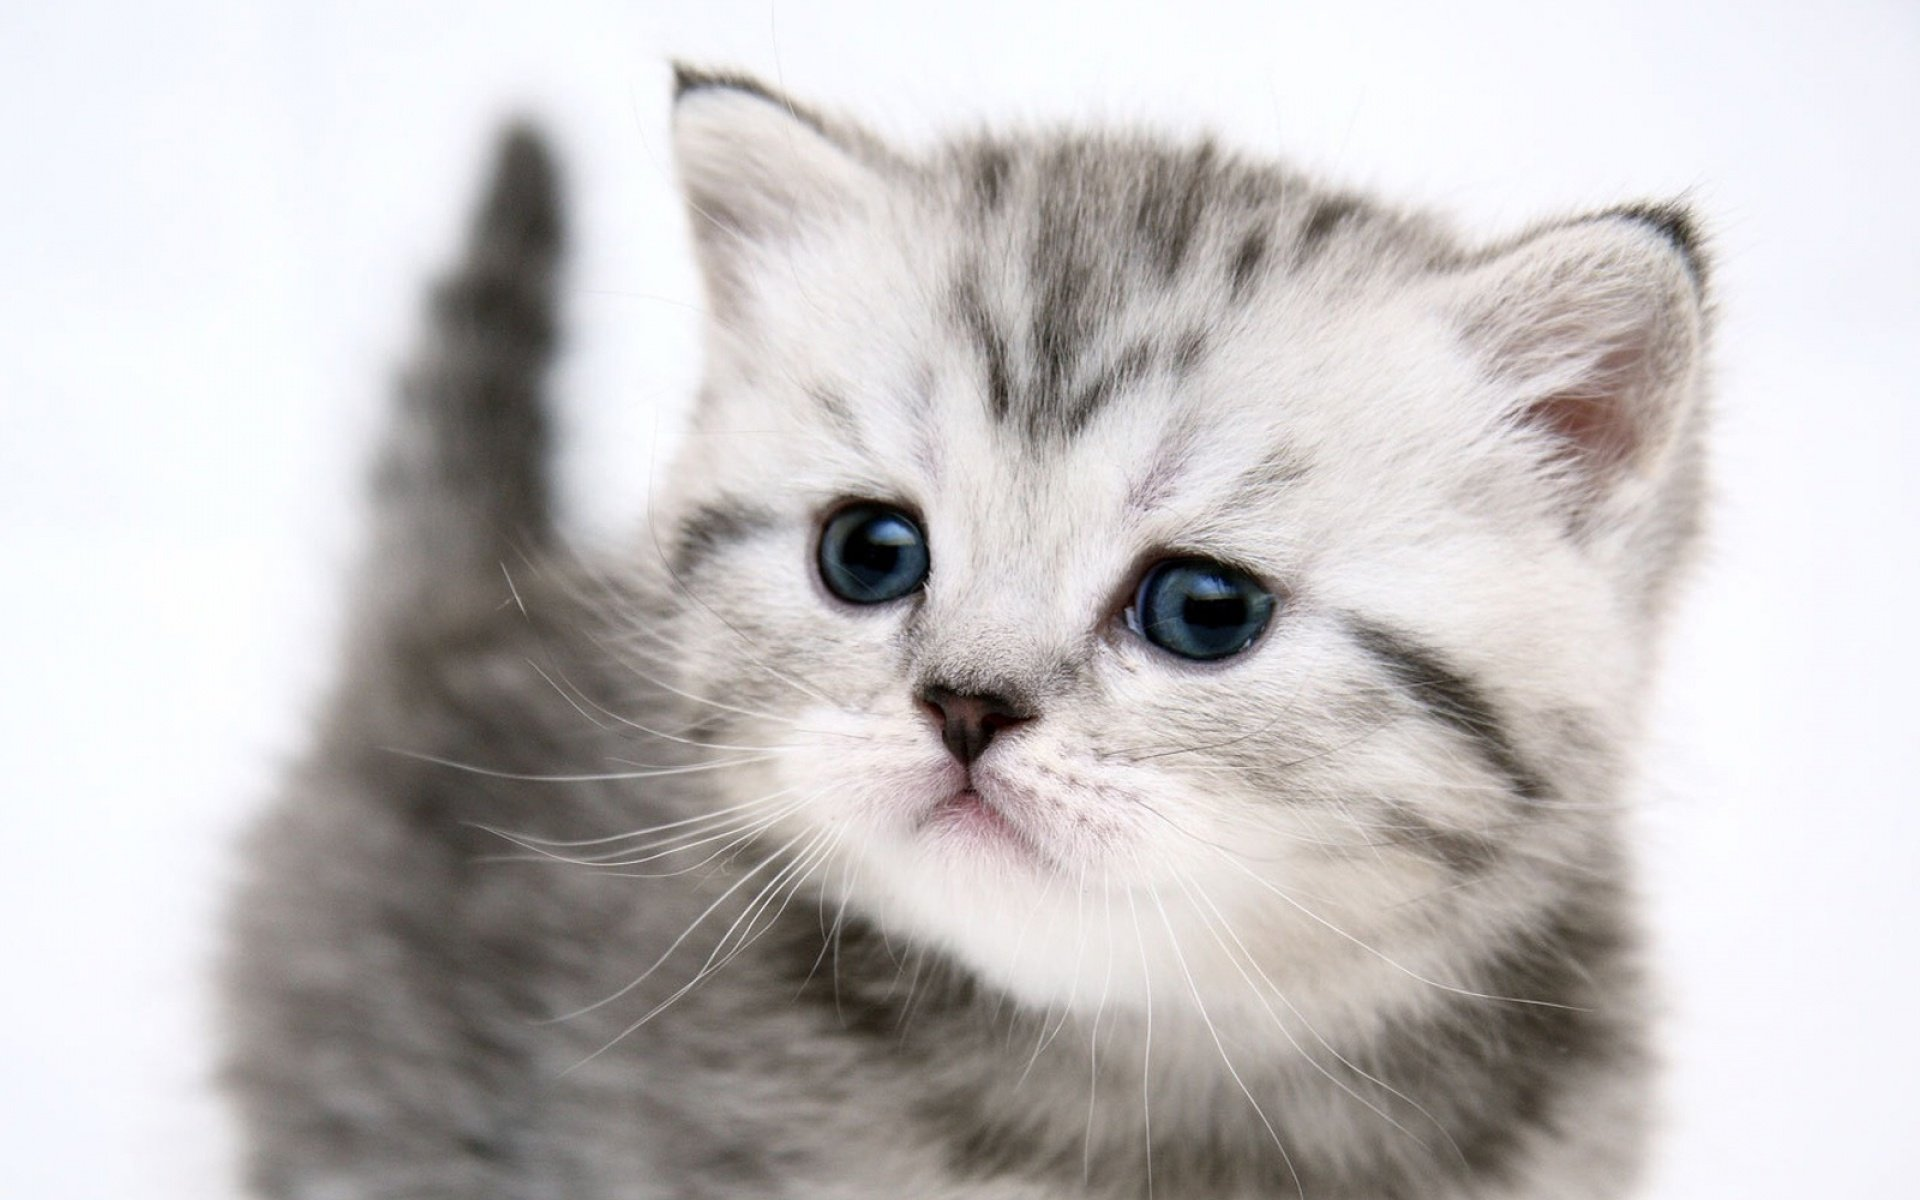 Cute Kittens Wallpapers 68 Wallpapers – Adorable